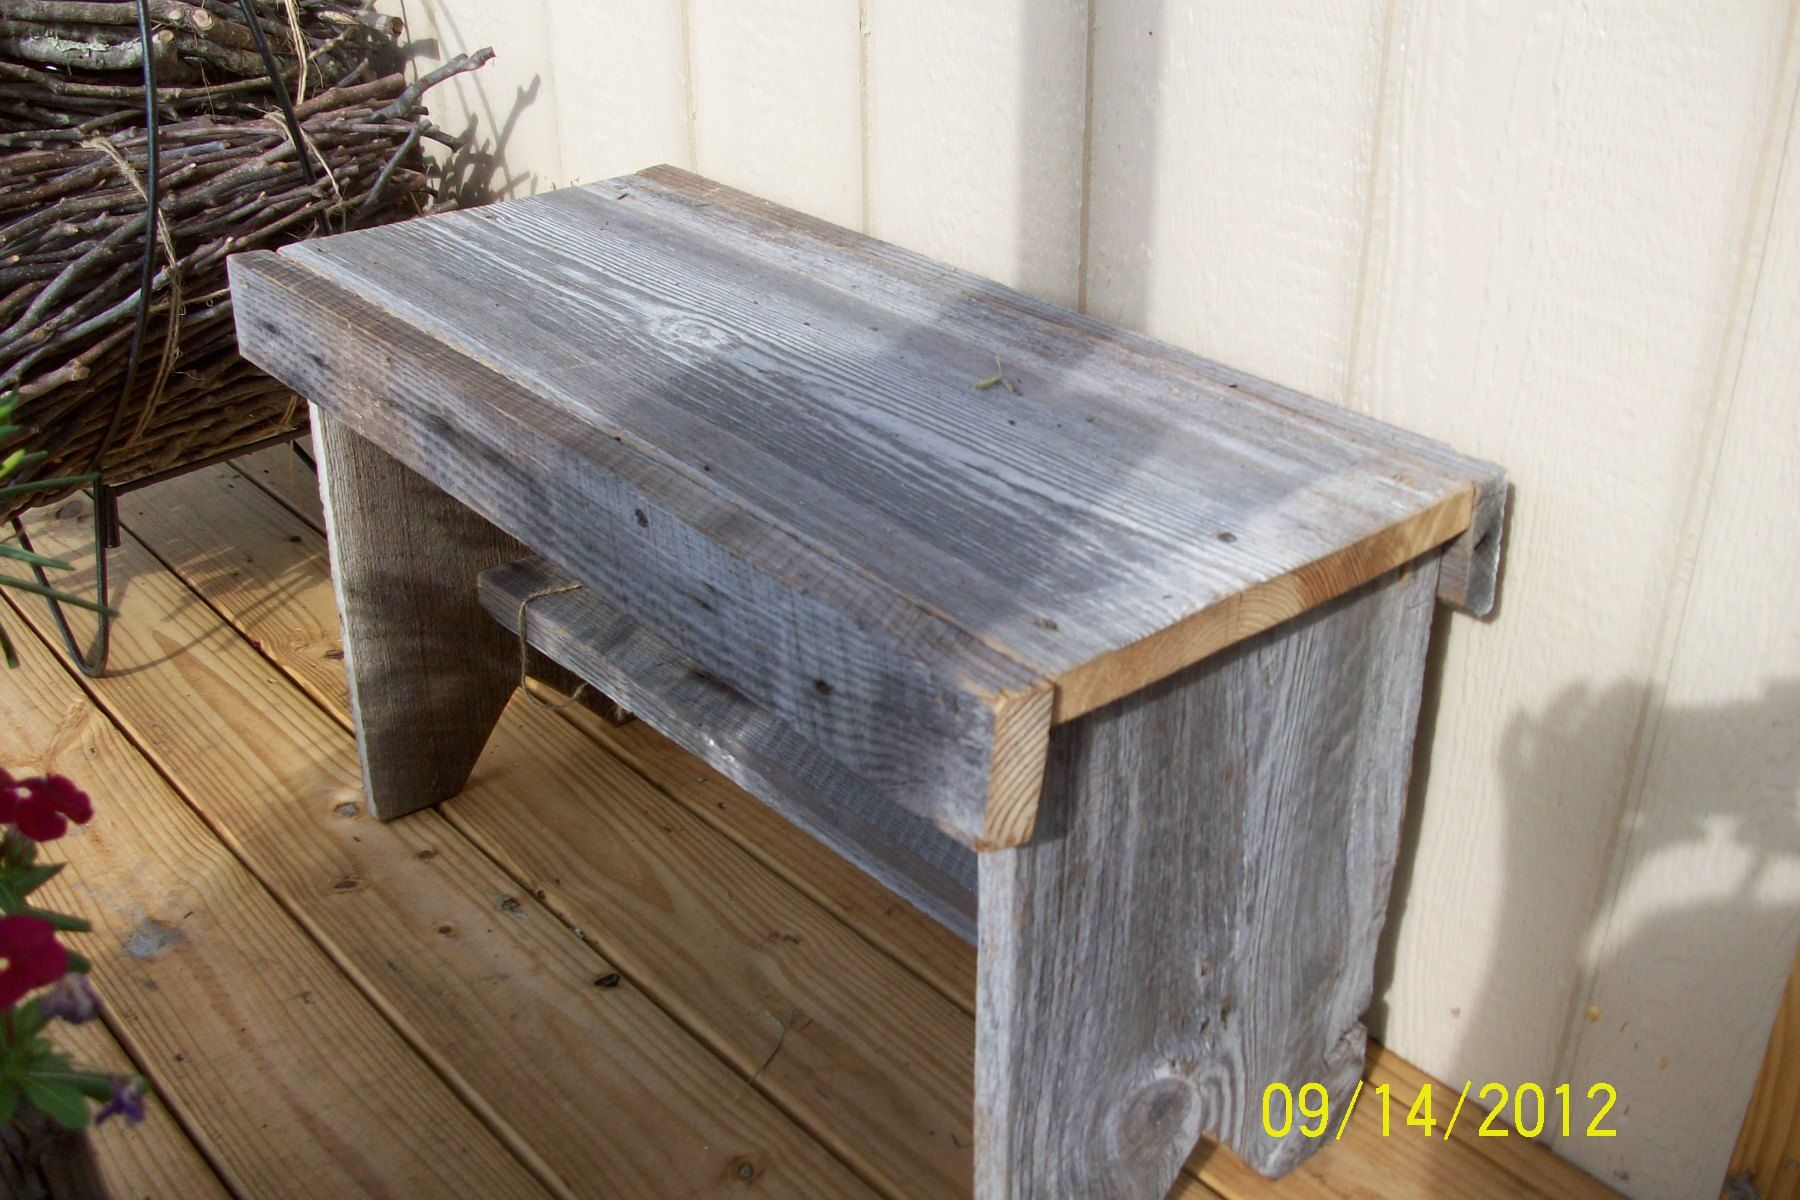 home decor catalogs home decor catalogs.htm barnboard bench  with images  discount home decor  wholesale  barnboard bench  with images